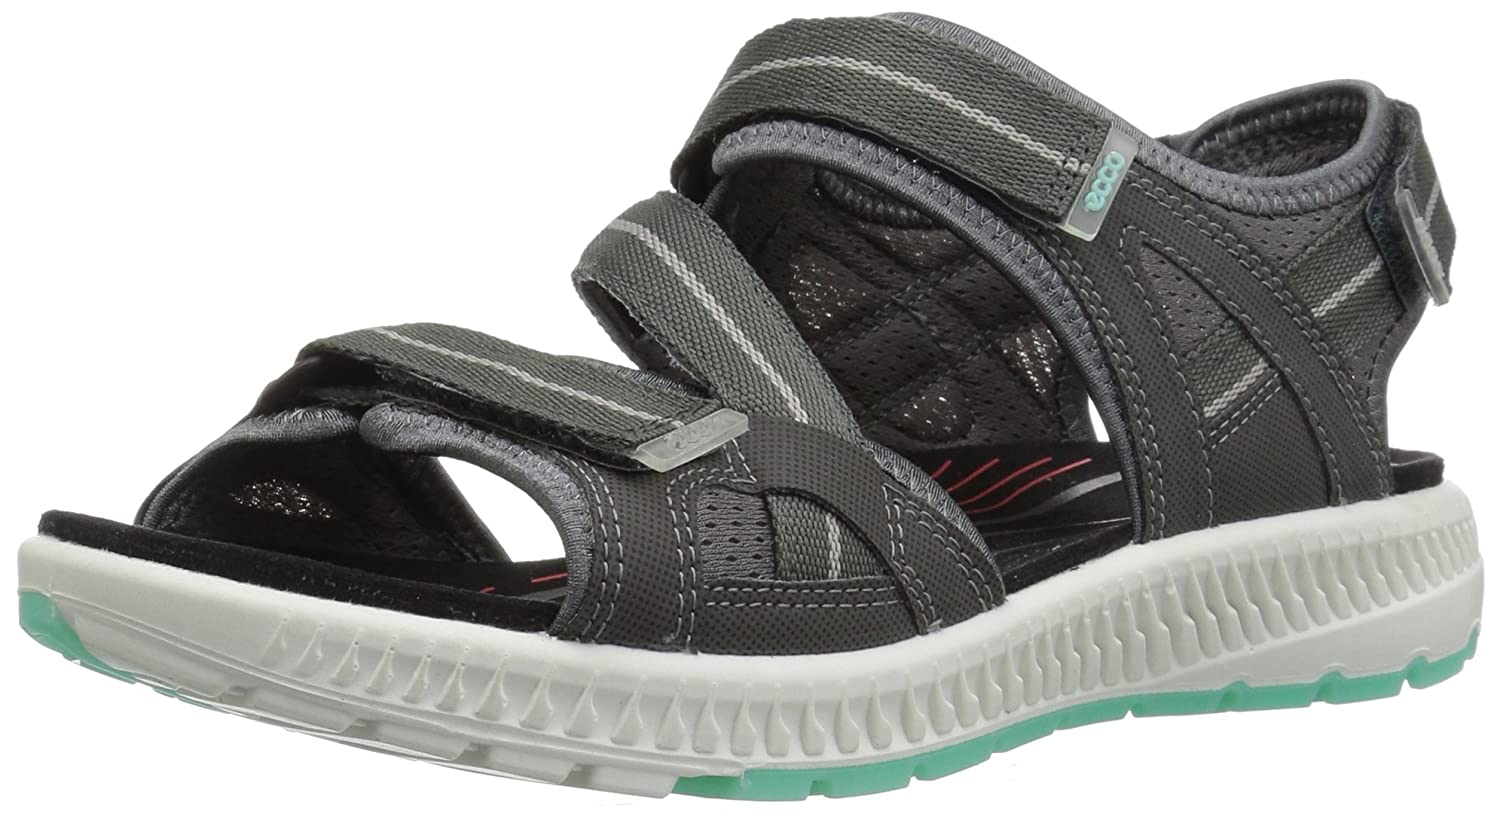 ECCO Women's Terra 3S Athletic Sandal B072F26DNQ 41 EU/10-10.5 M US|Dark Shadow/Emerald